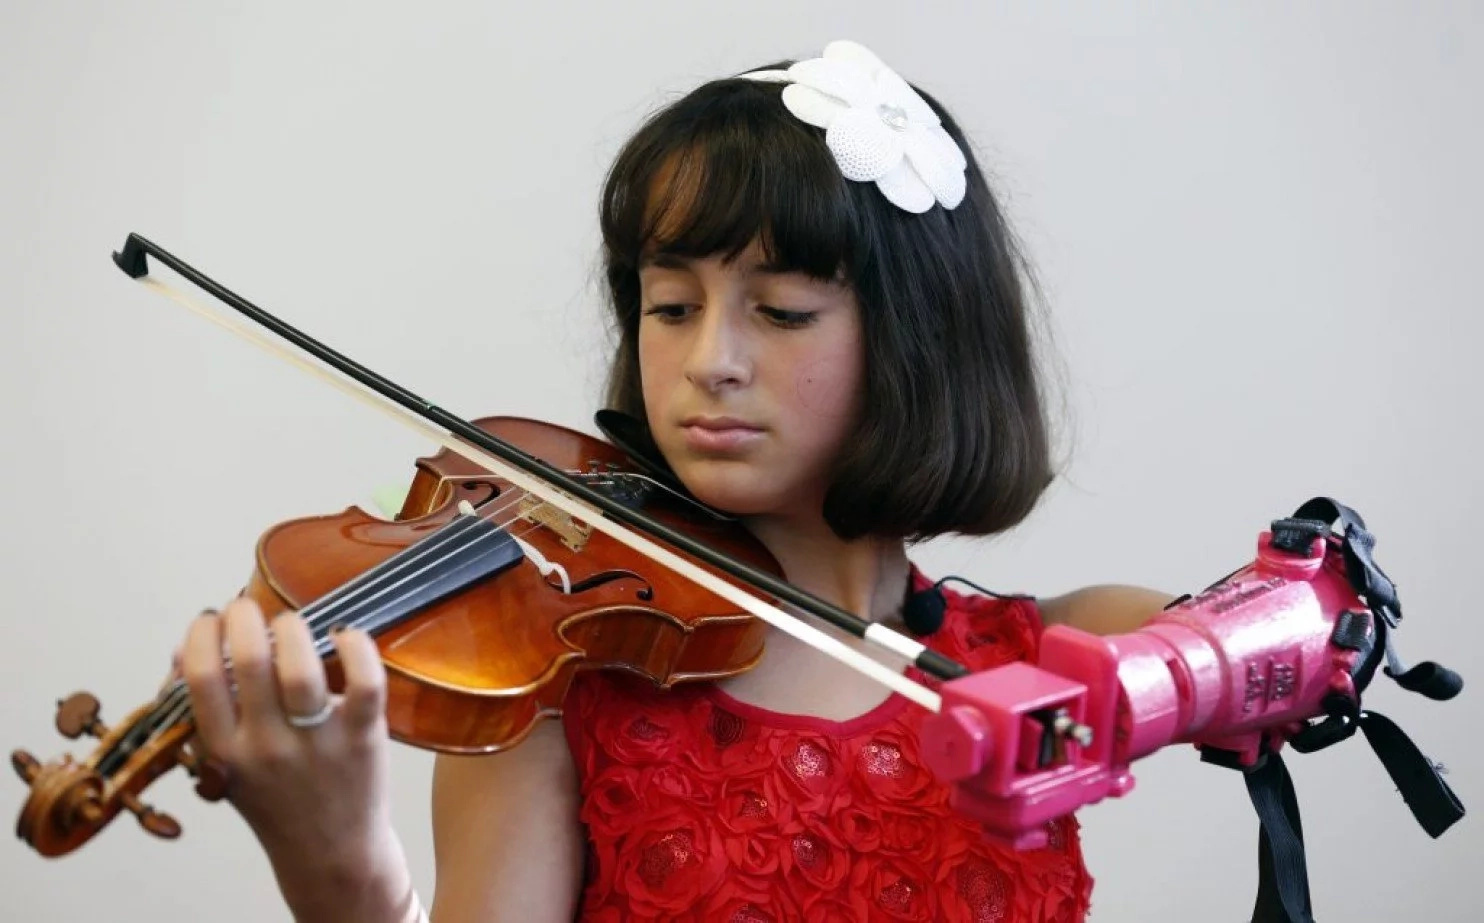 Touching! 10-year-old girl born without left hand wanted to play violin, then a miracle happened (photos)